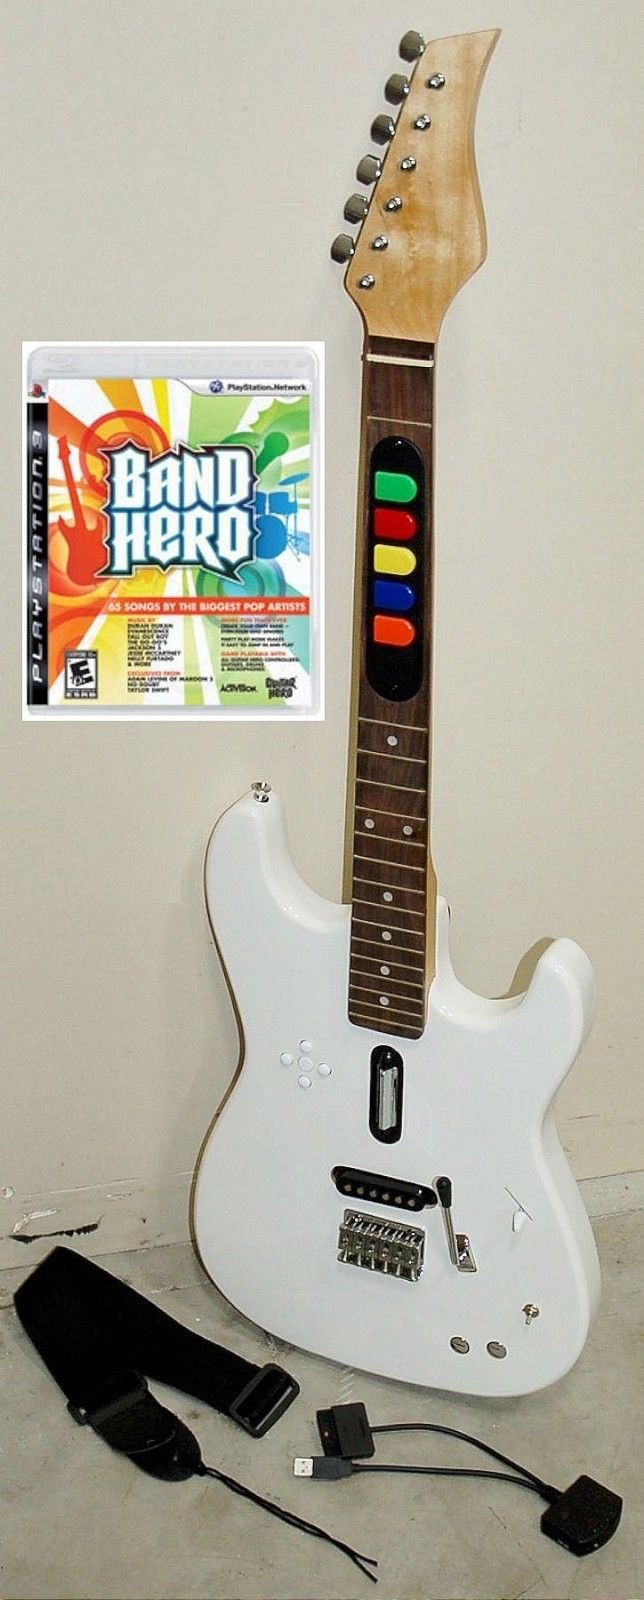 Playstation 3 PS3 Band Hero Video Game + Full Size Wireless WHITE Guitar Controller REAL WOOD play rock music hero band